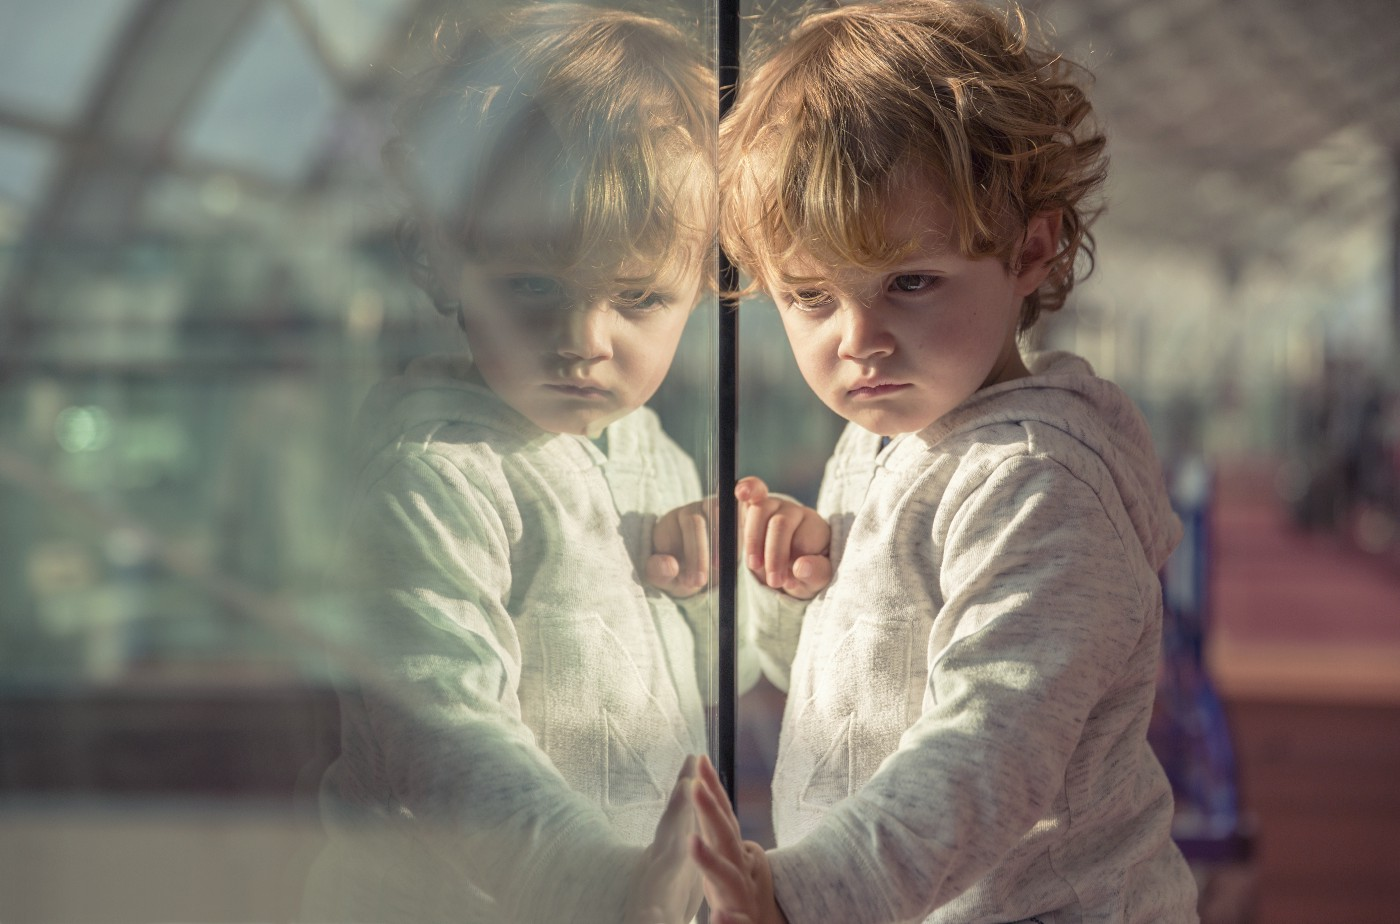 Child thinking—pensively